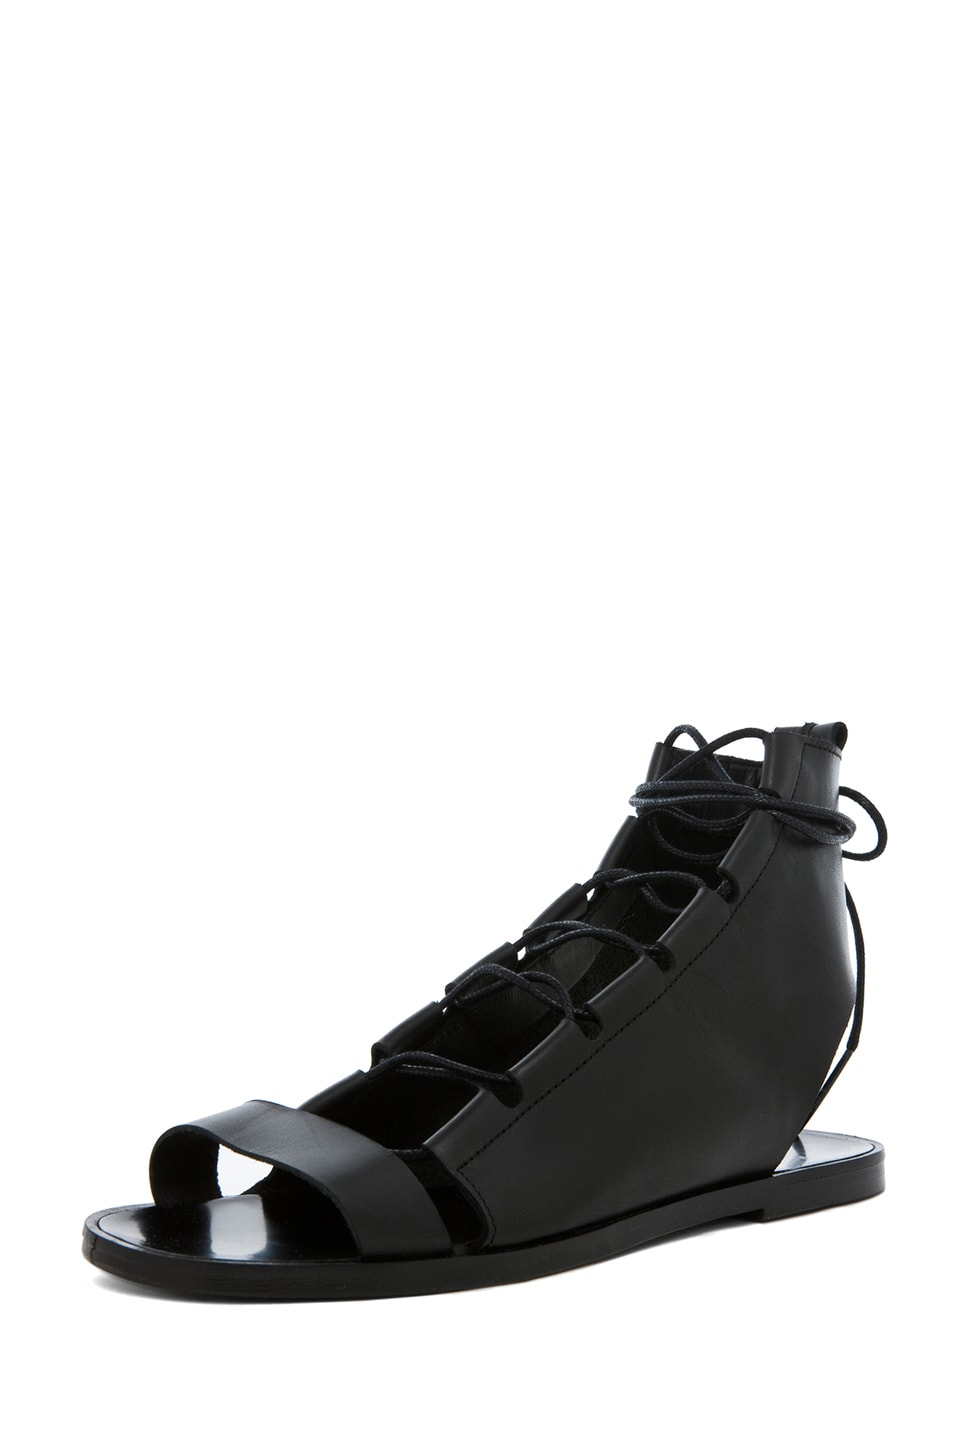 Image 2 of Pierre Hardy Gladiator Leather Sandals in Black